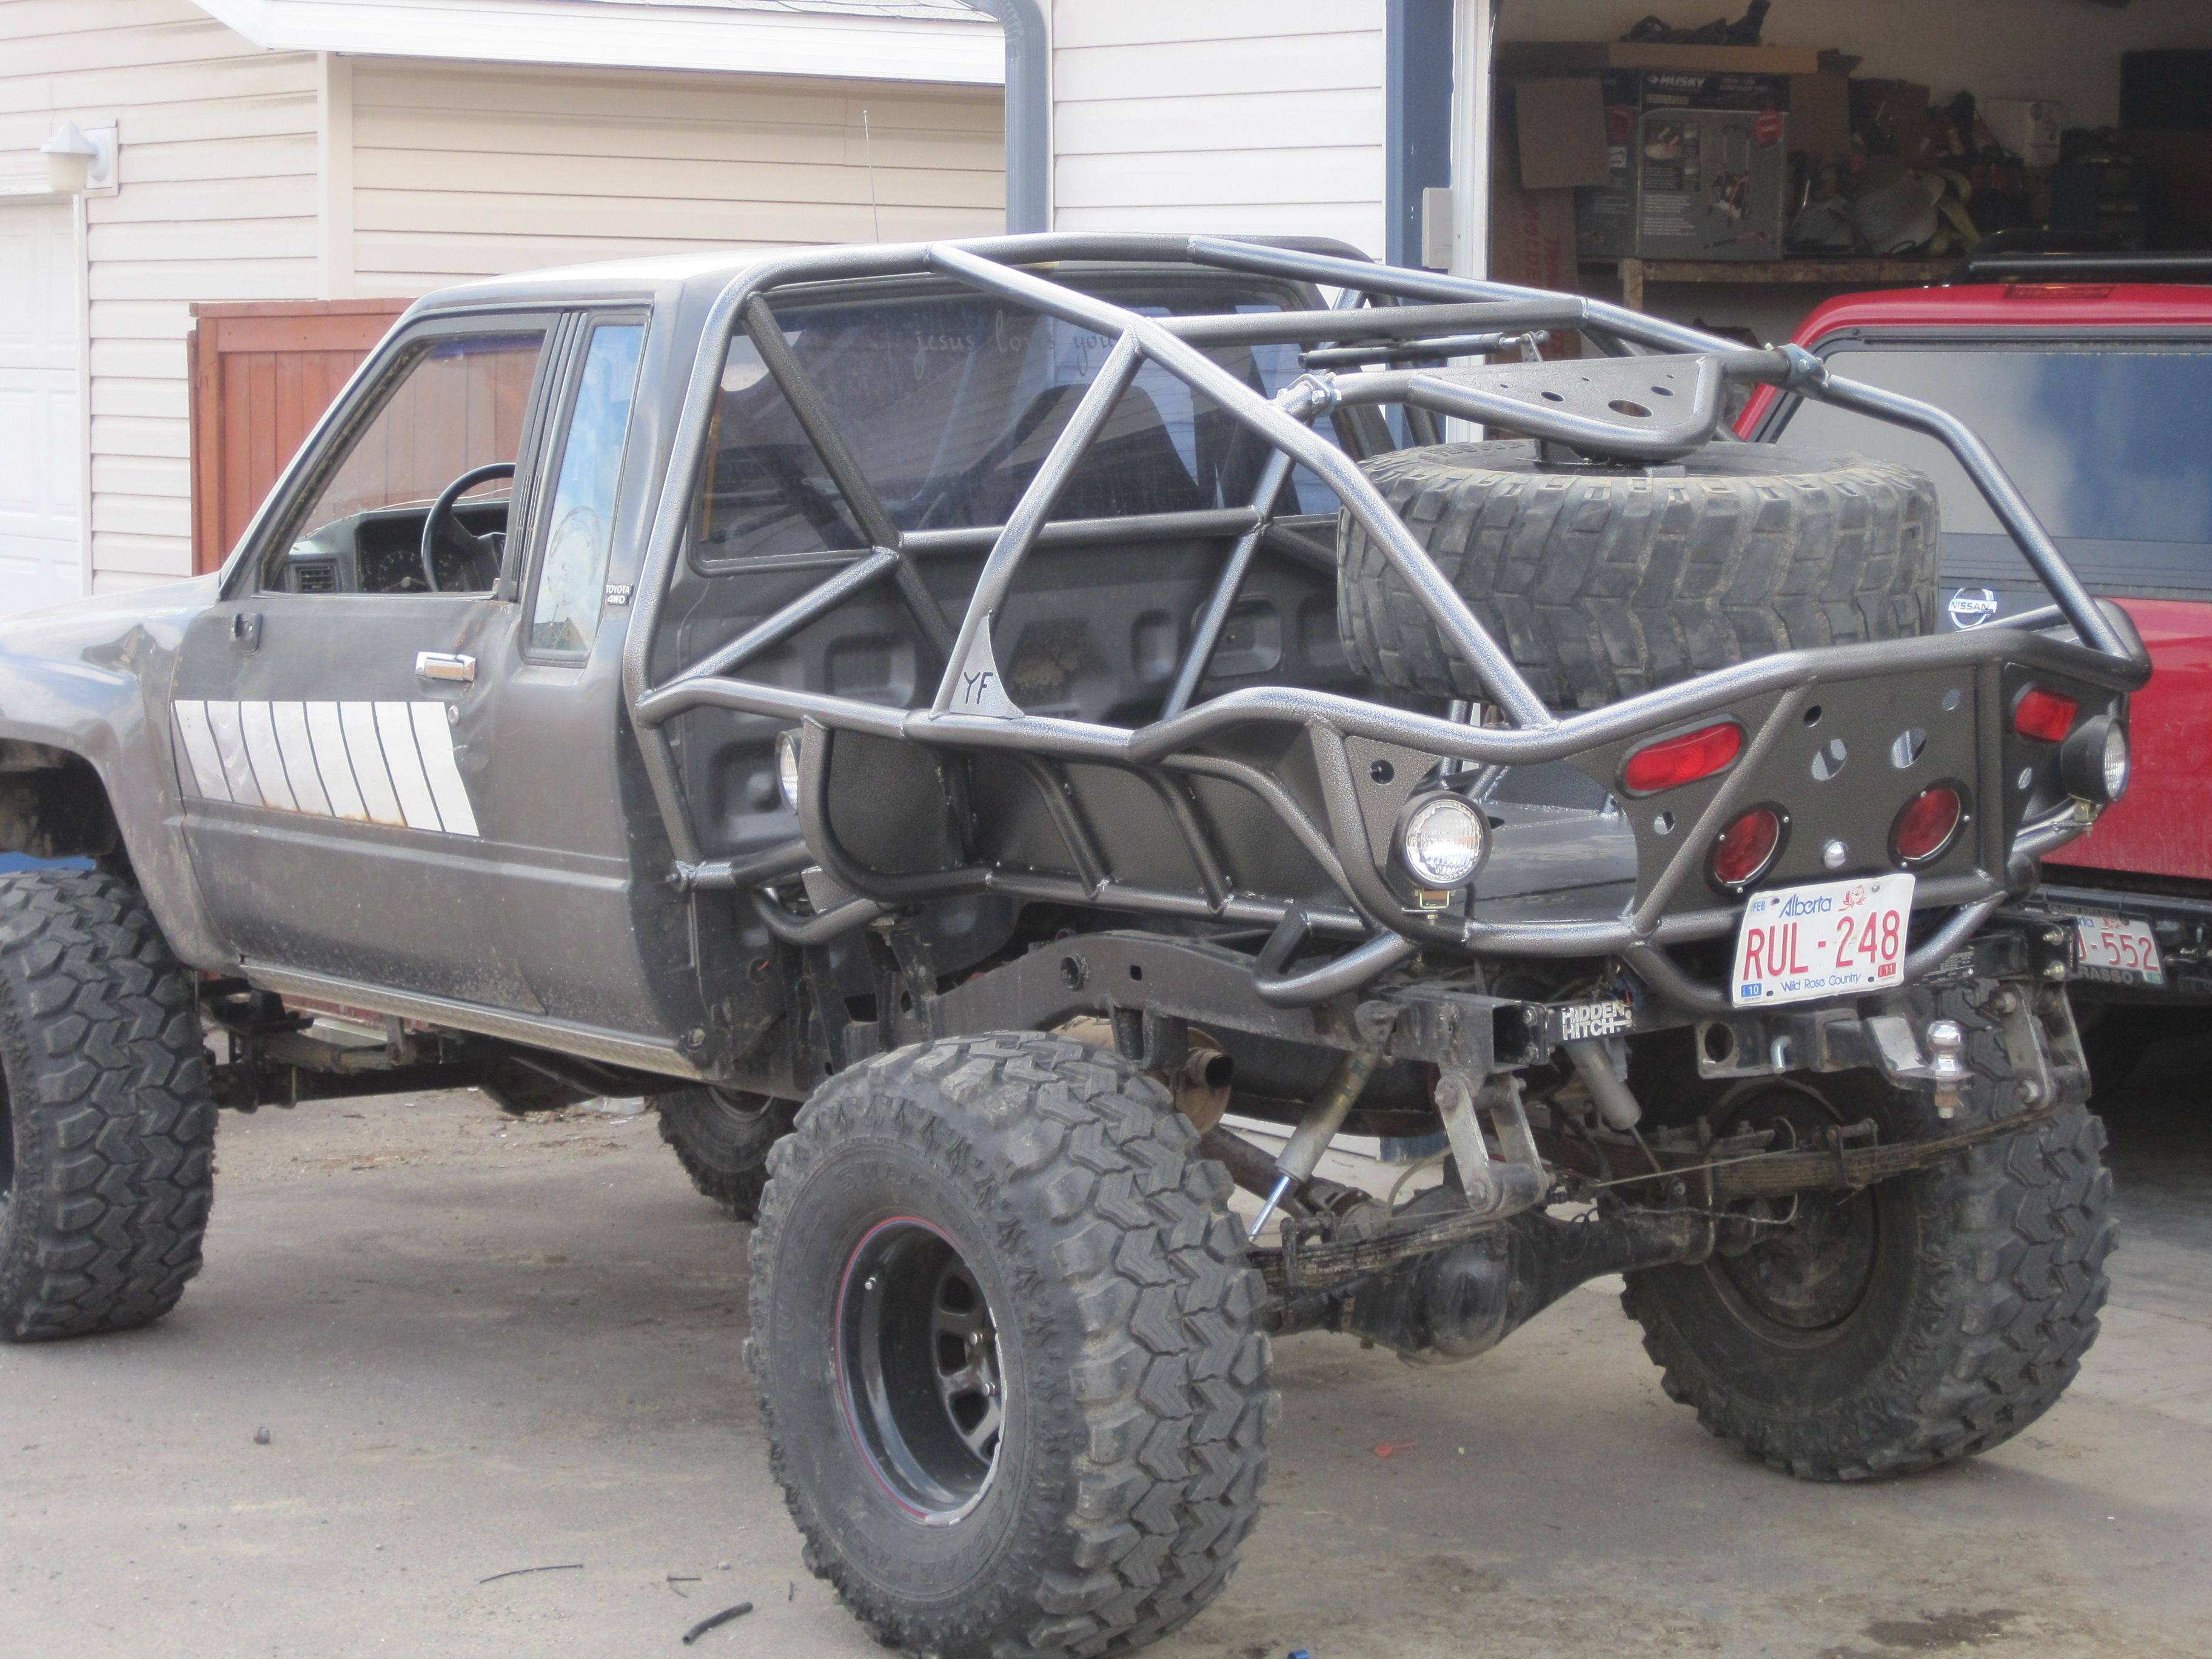 crazy bed Toyotas Pinterest Crazy beds, 4x4 and Toyota